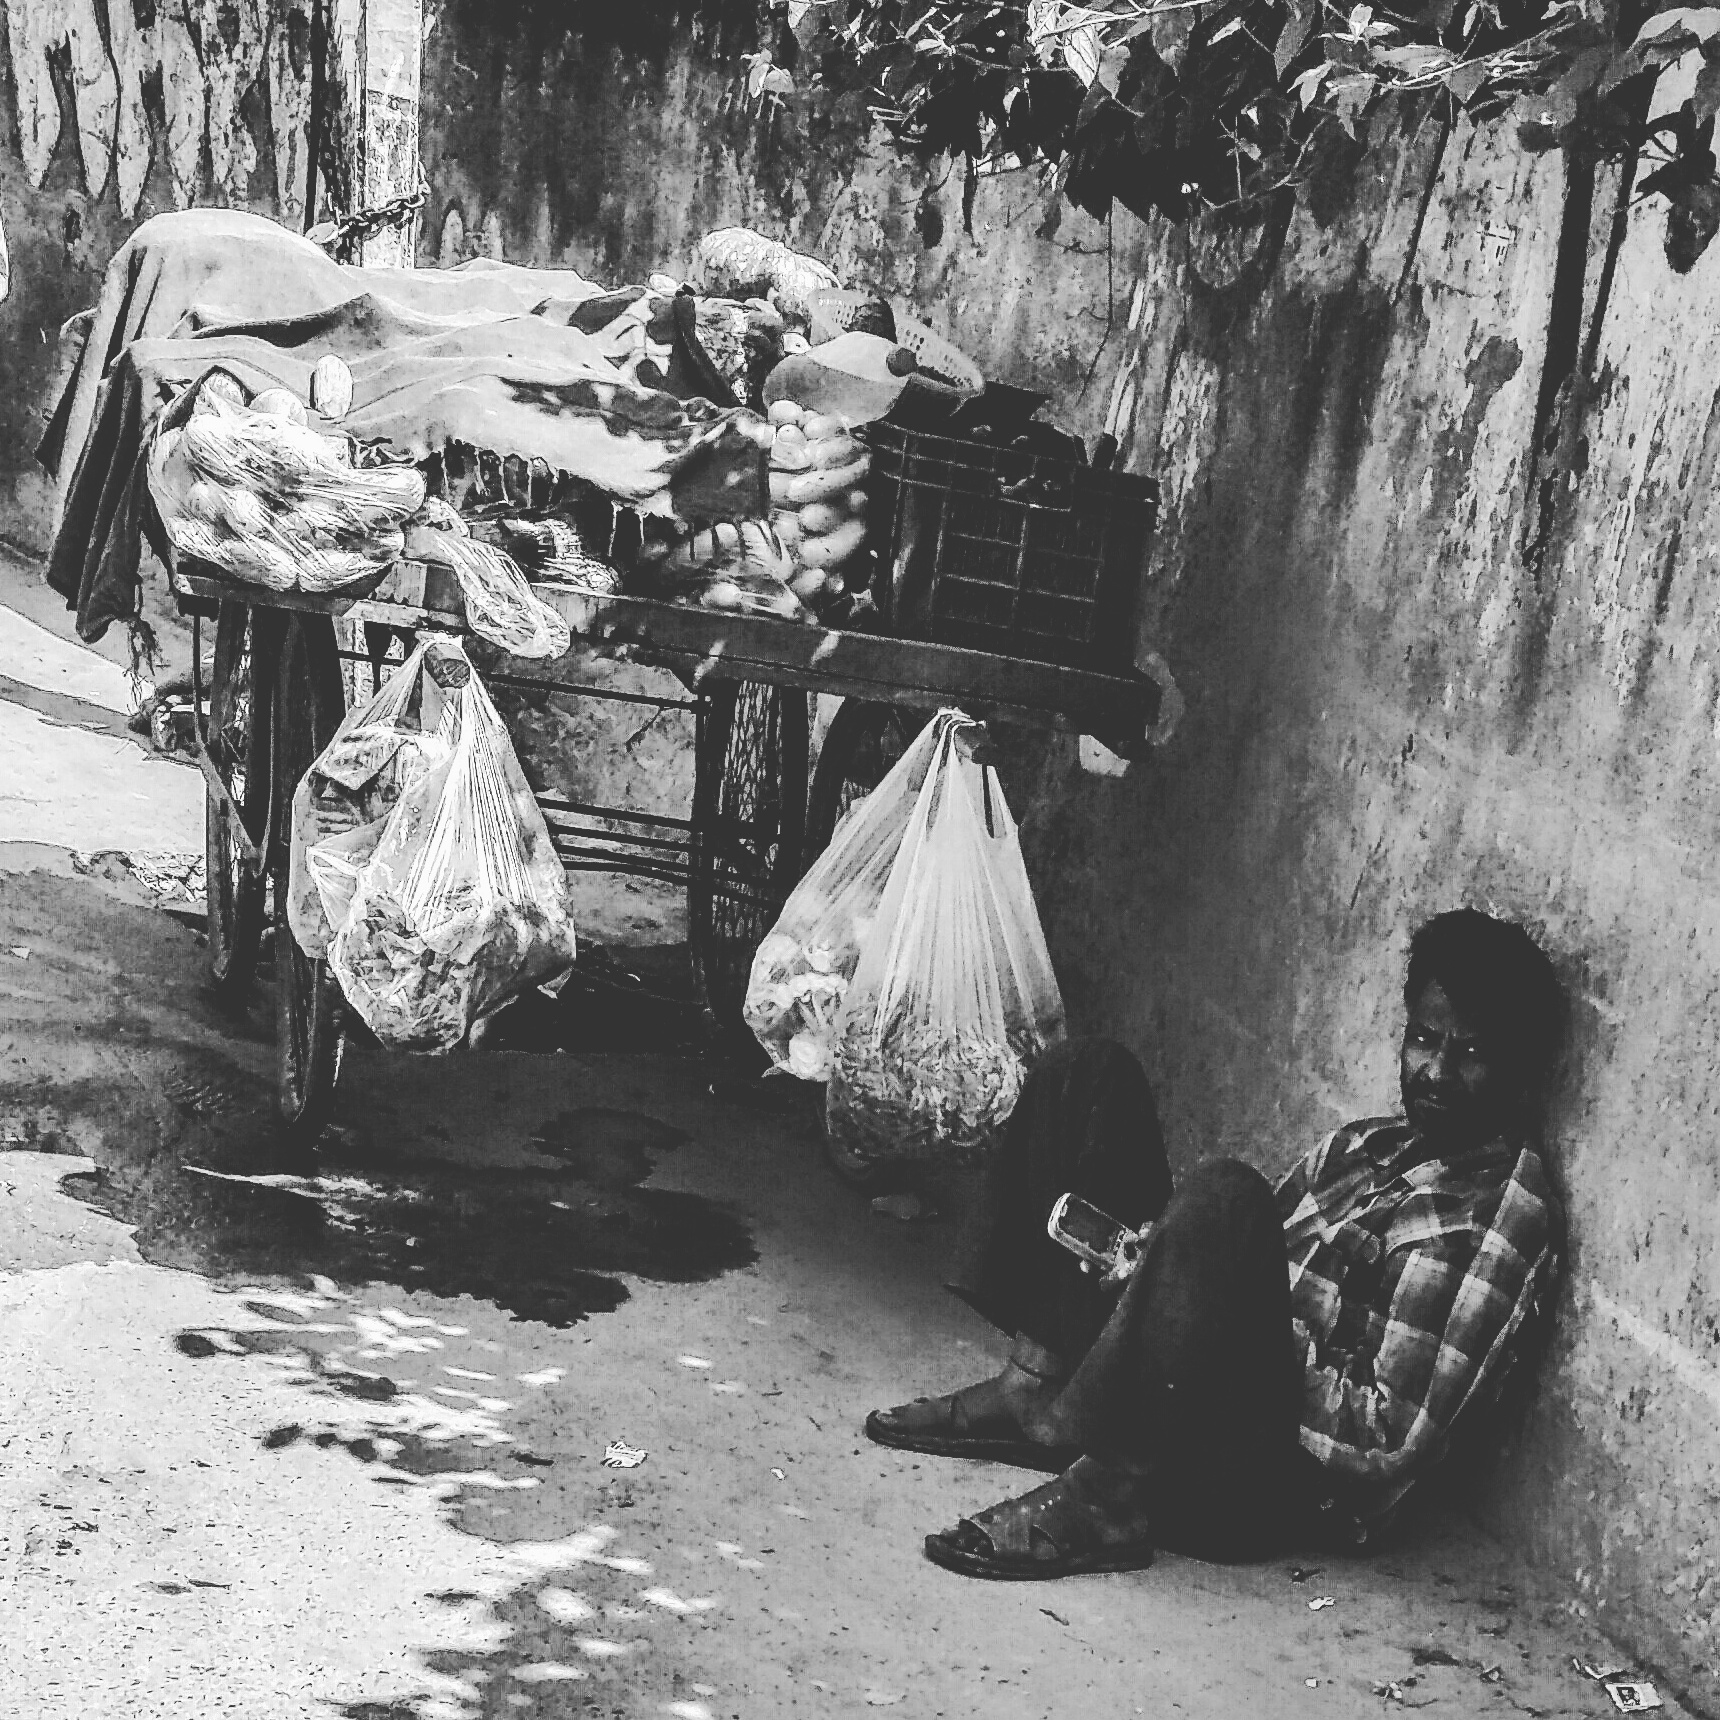 An exhausted vegetable-seller takes a breather in Delhi's scorching heat by sitting against a wall in an attempt to protect himself from the Sun